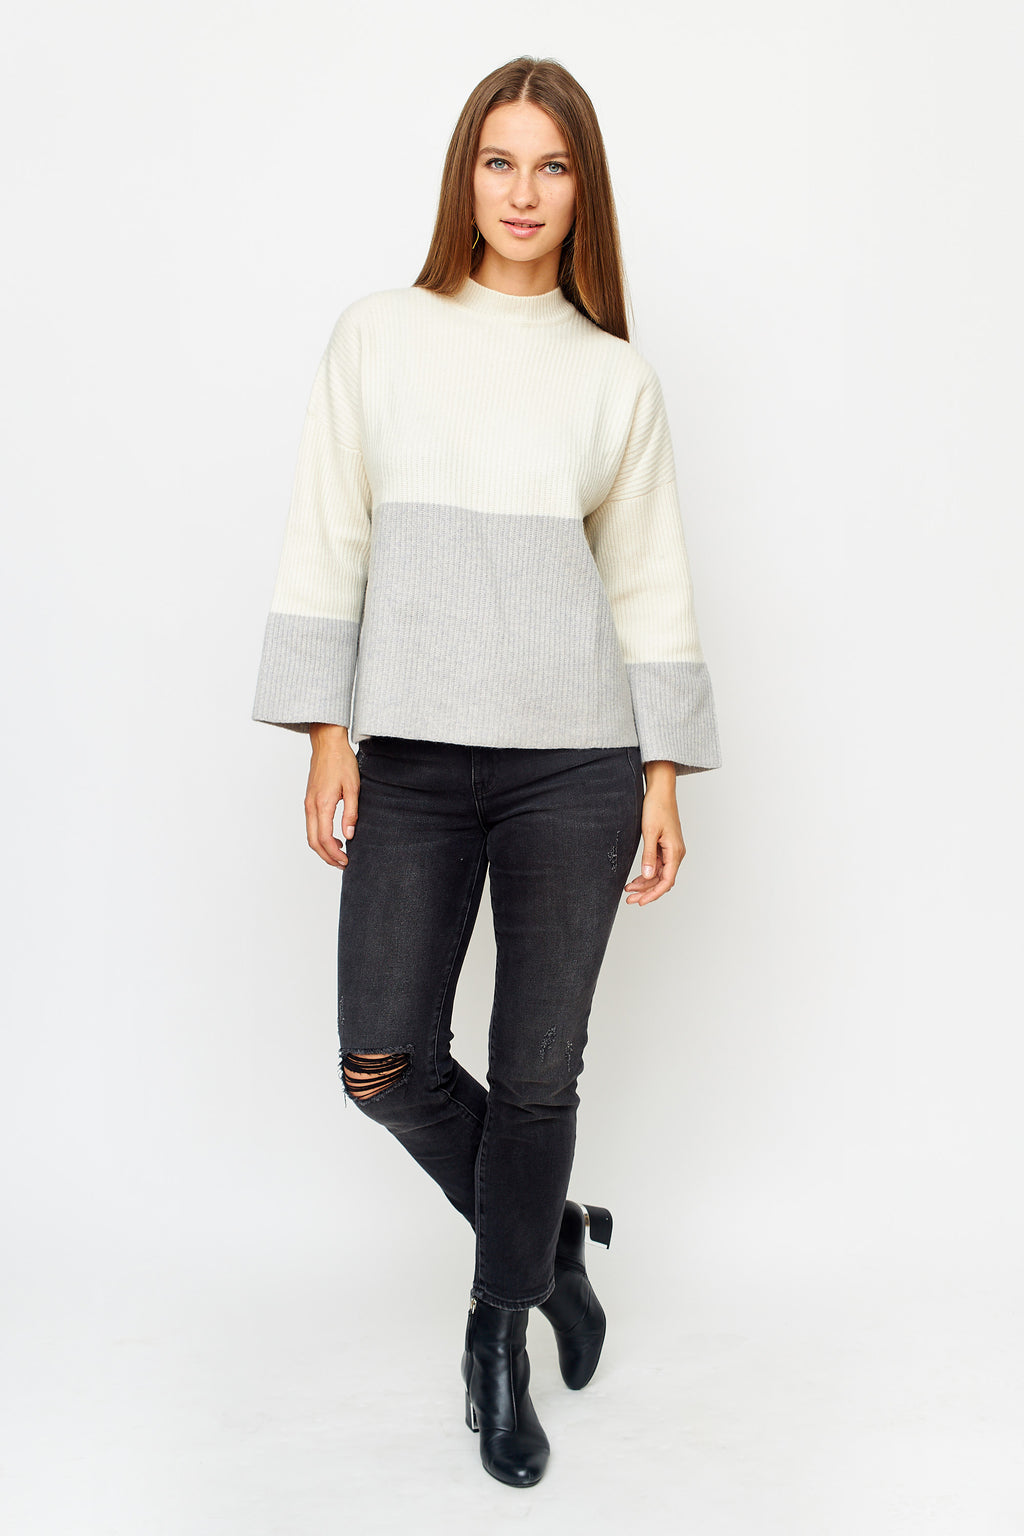 Oversized Striped Ribbed Knit Pull Over